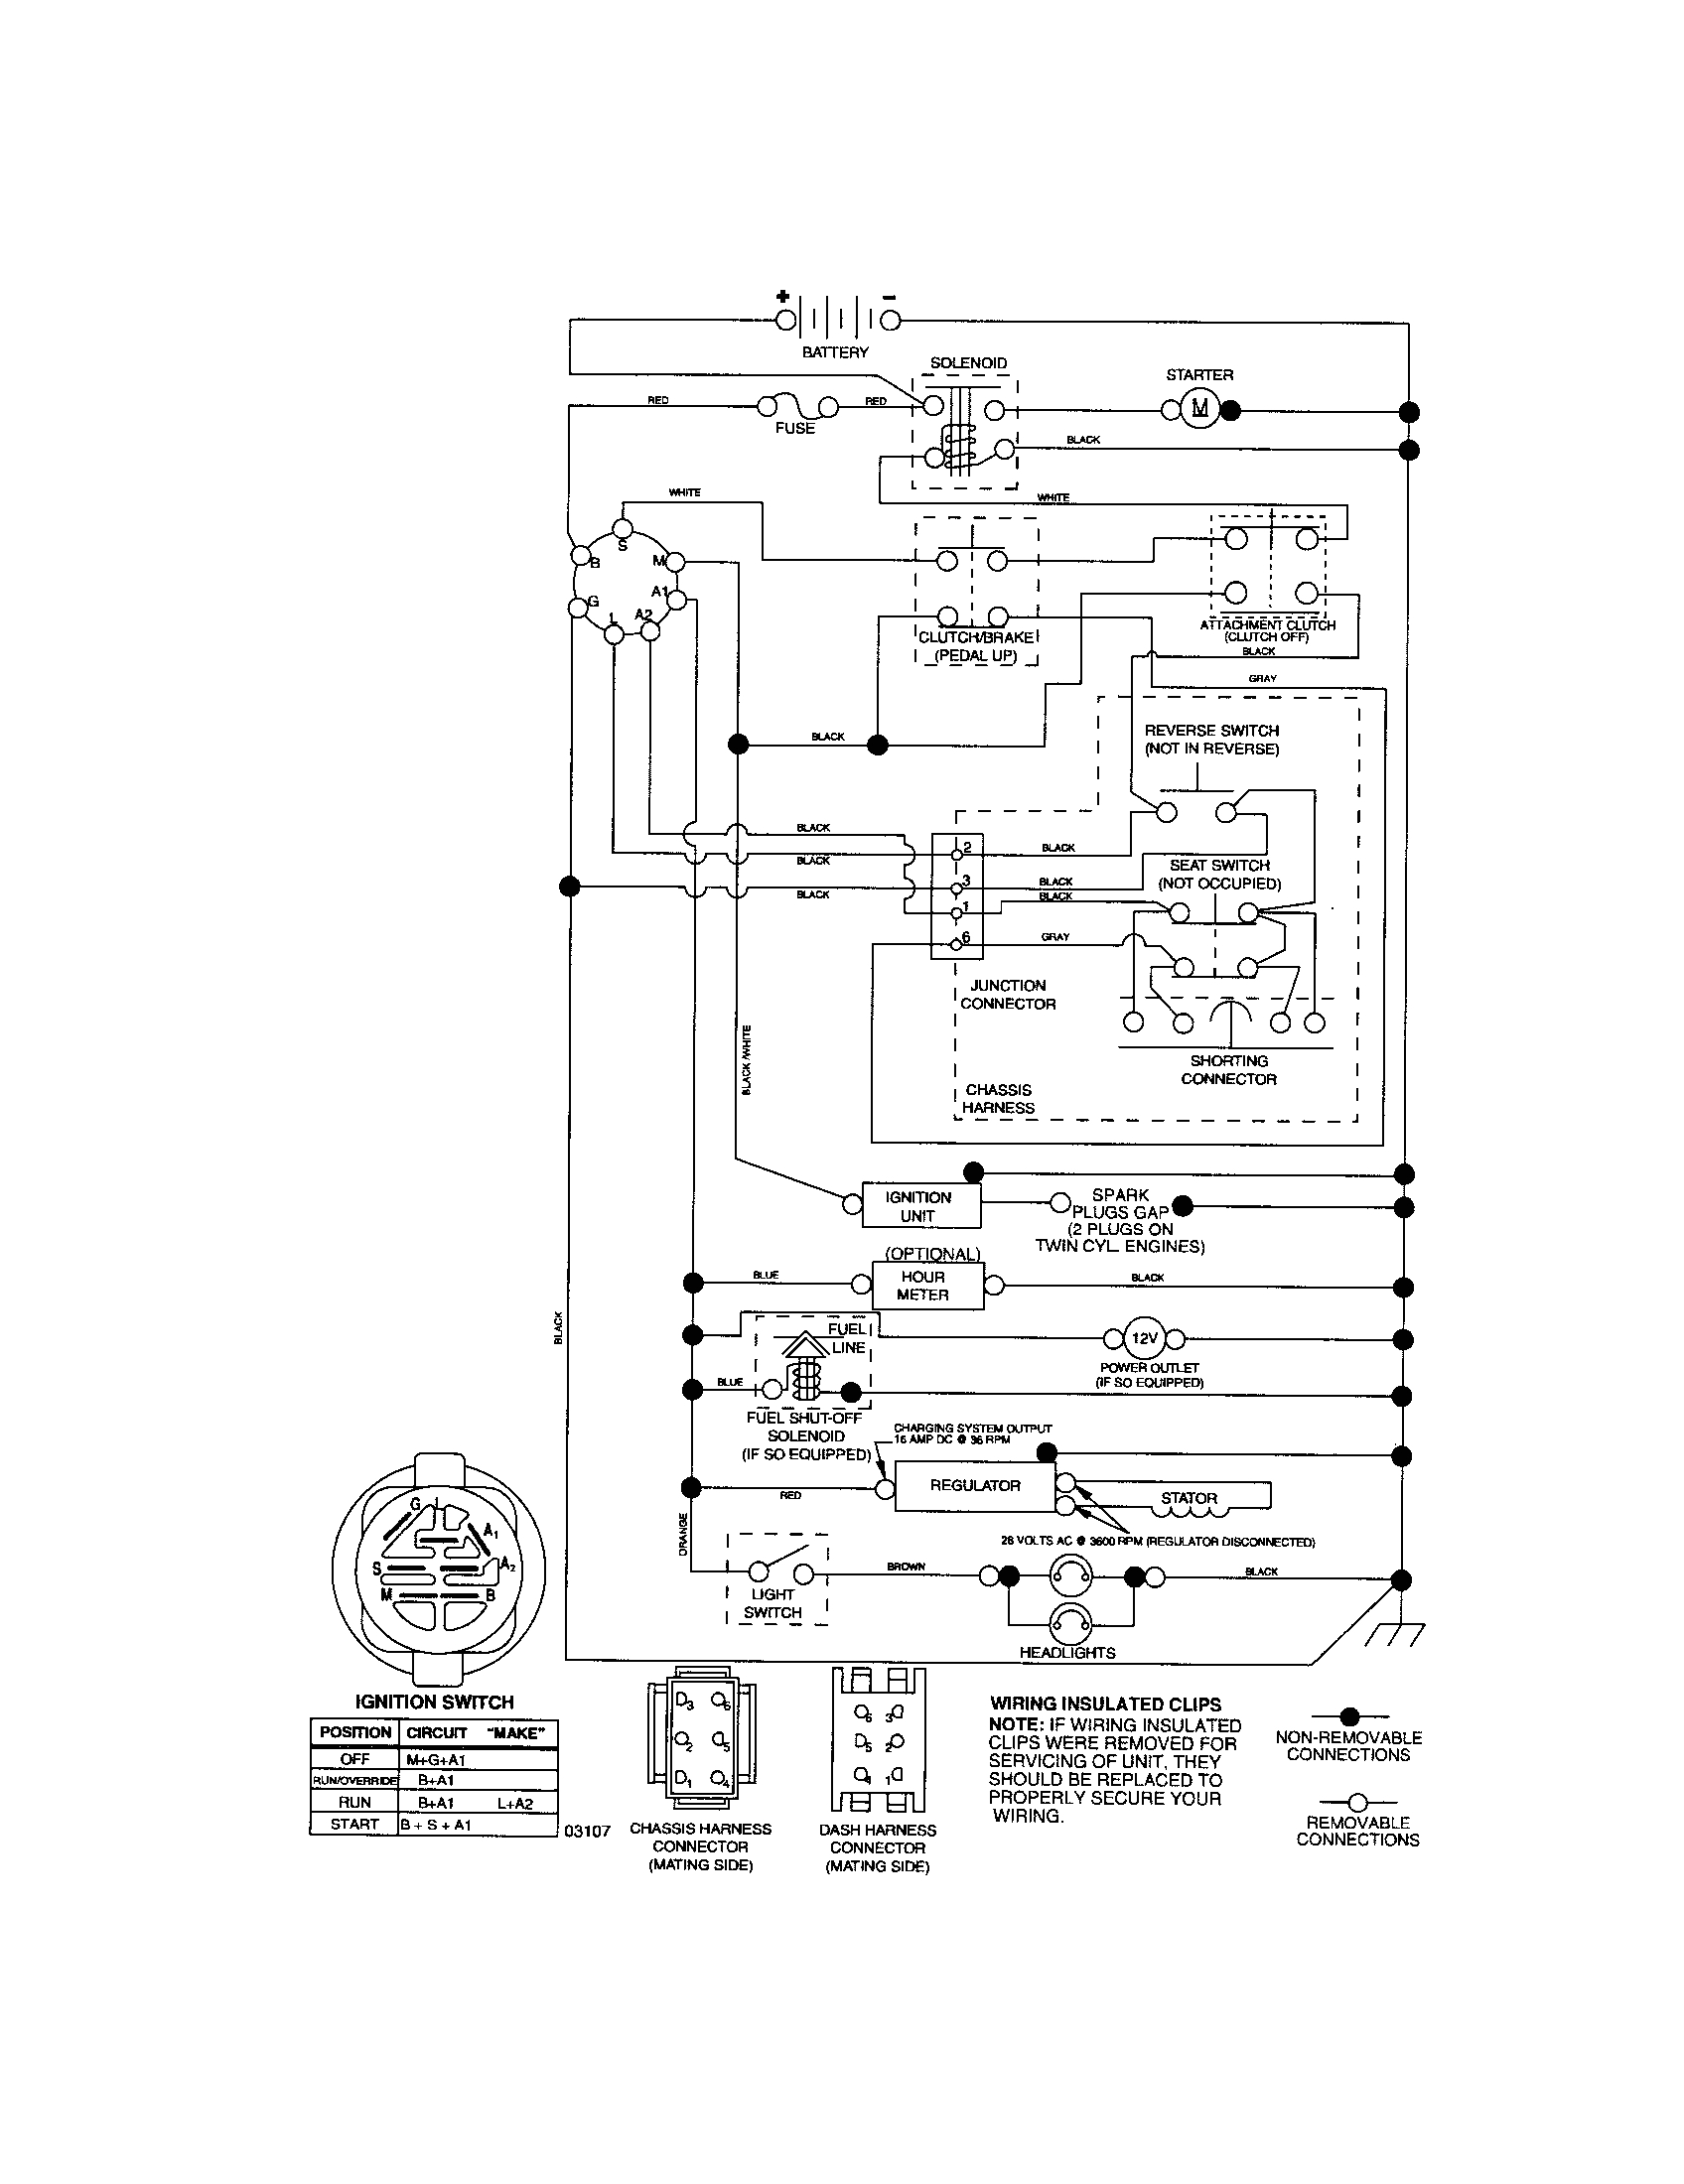 pictures gallery of wiring diagram for a craftsman riding mower awesome craftsman garage door sensor wiring diagram 0d